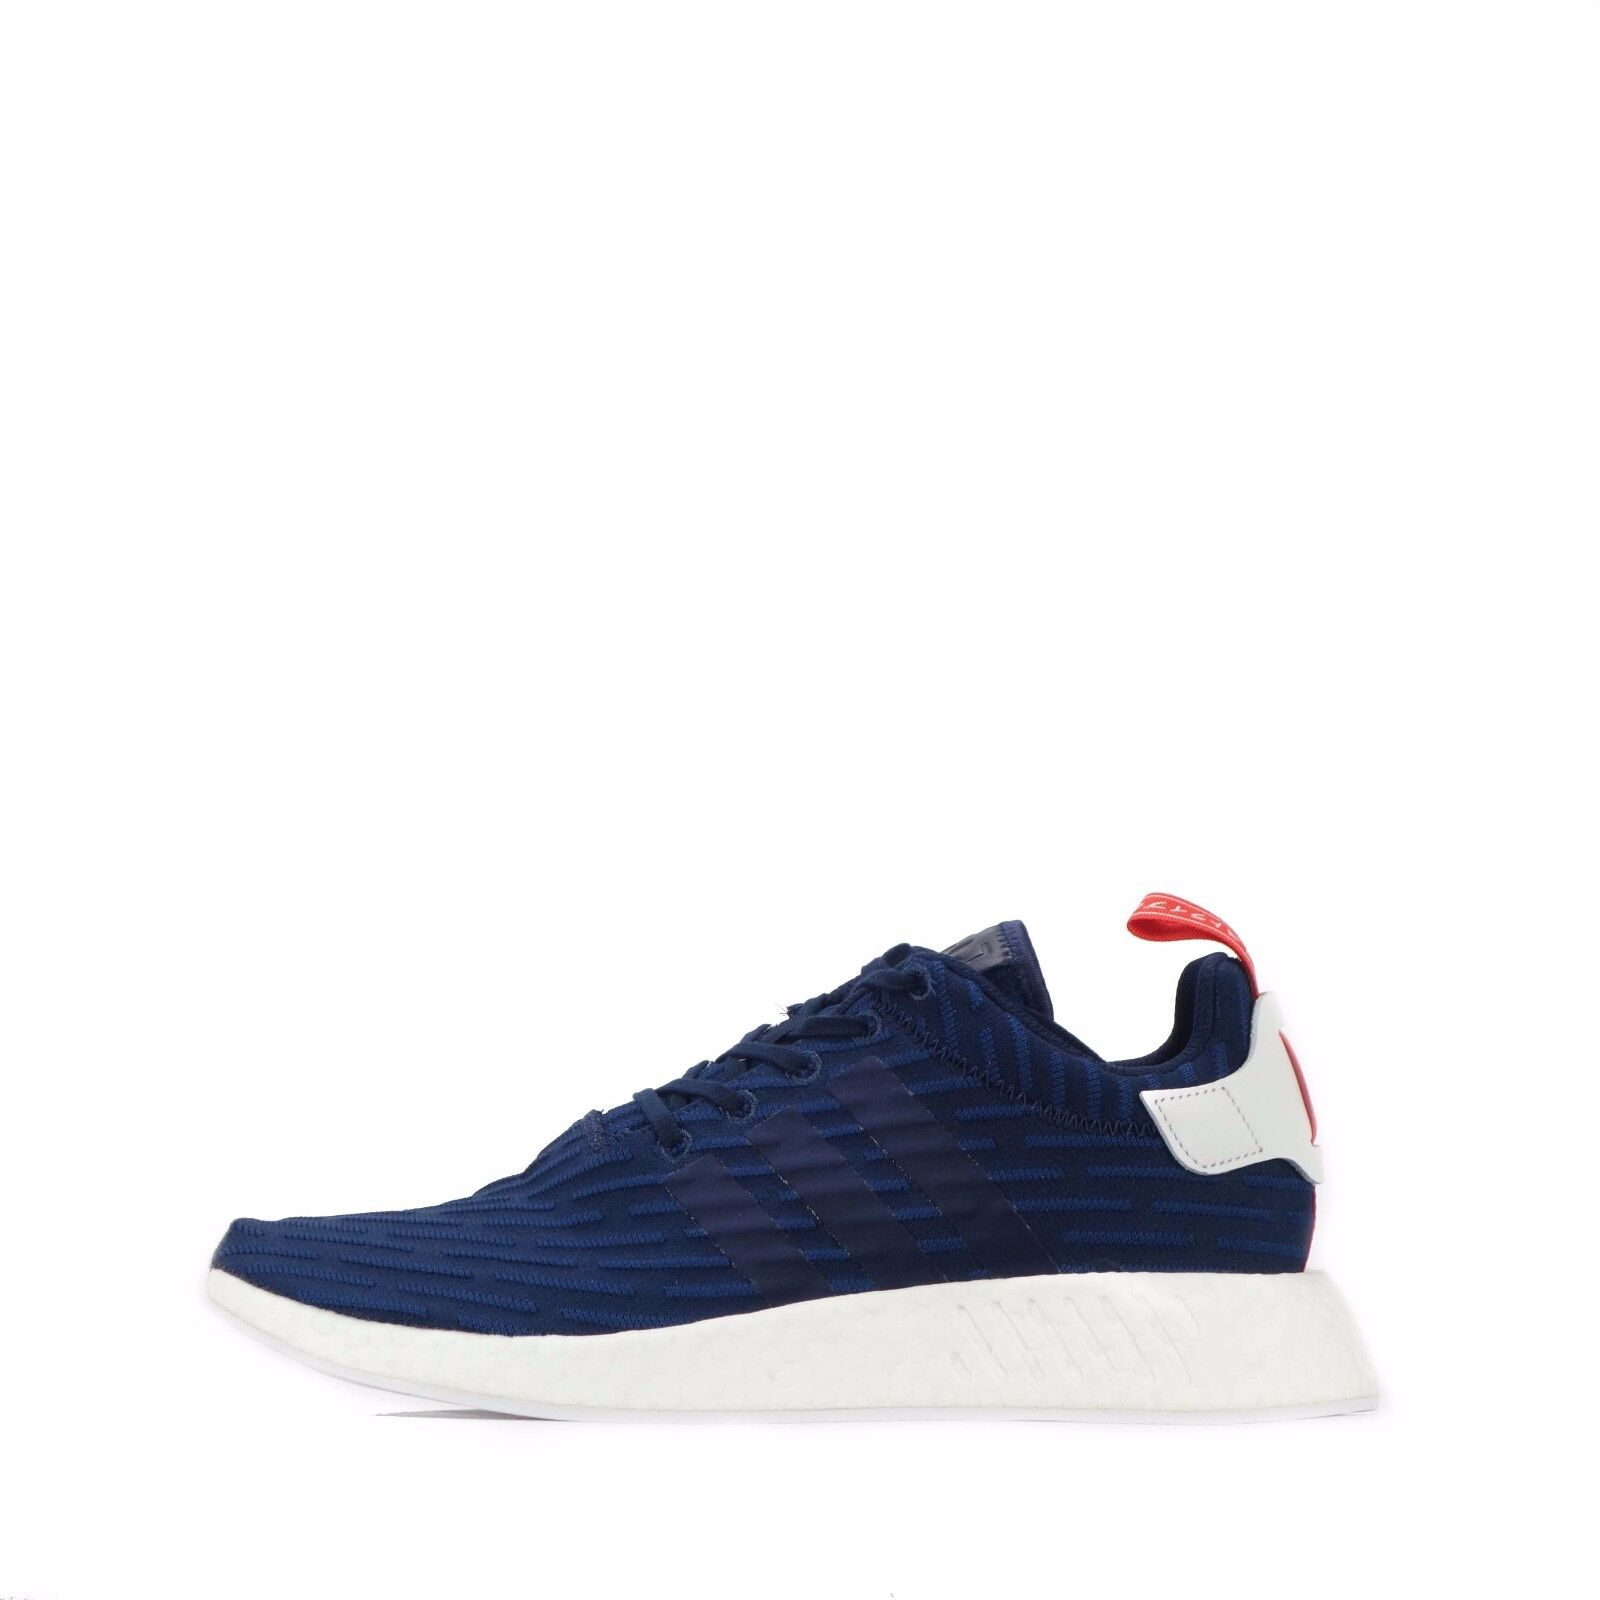 adidas NMD_R2 Men's Shoes Navy/White